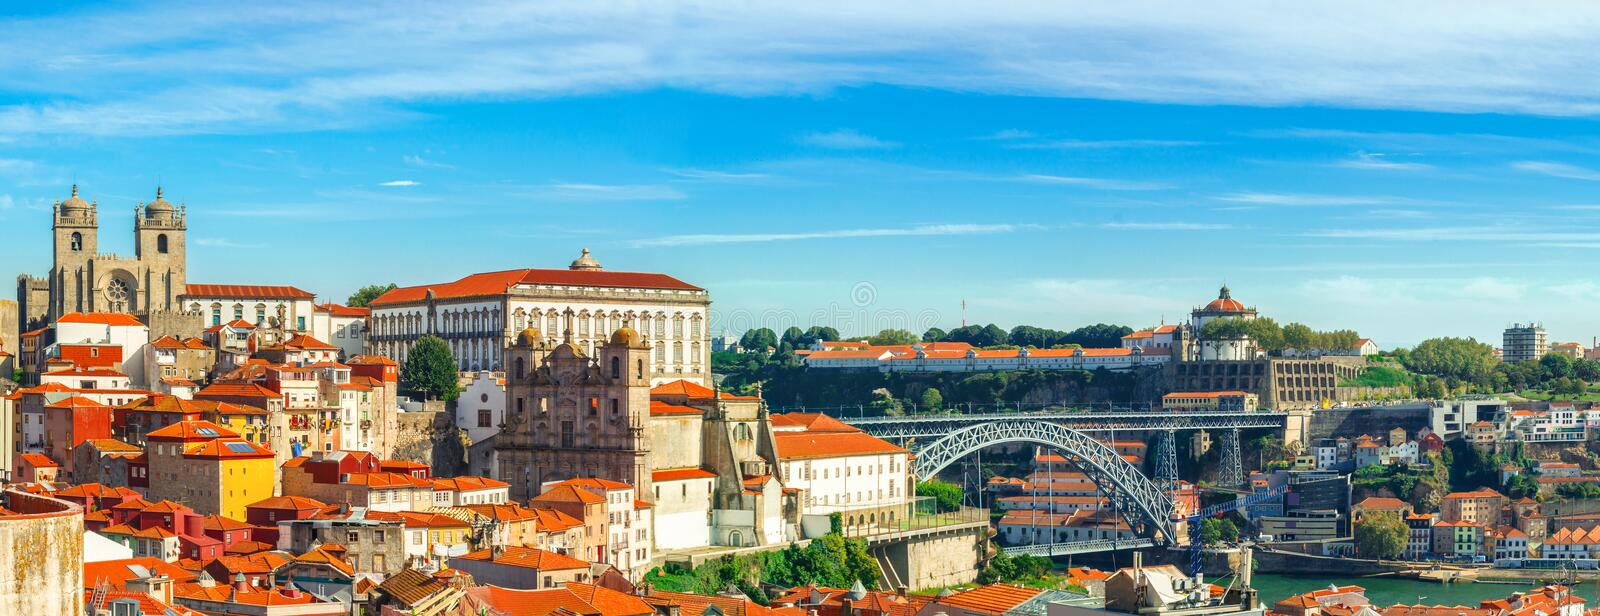 Porto, Portugal. Panoramic view of downtown of Porto, Portugal with Dom Luis I Bridge over Douro River royalty free stock image